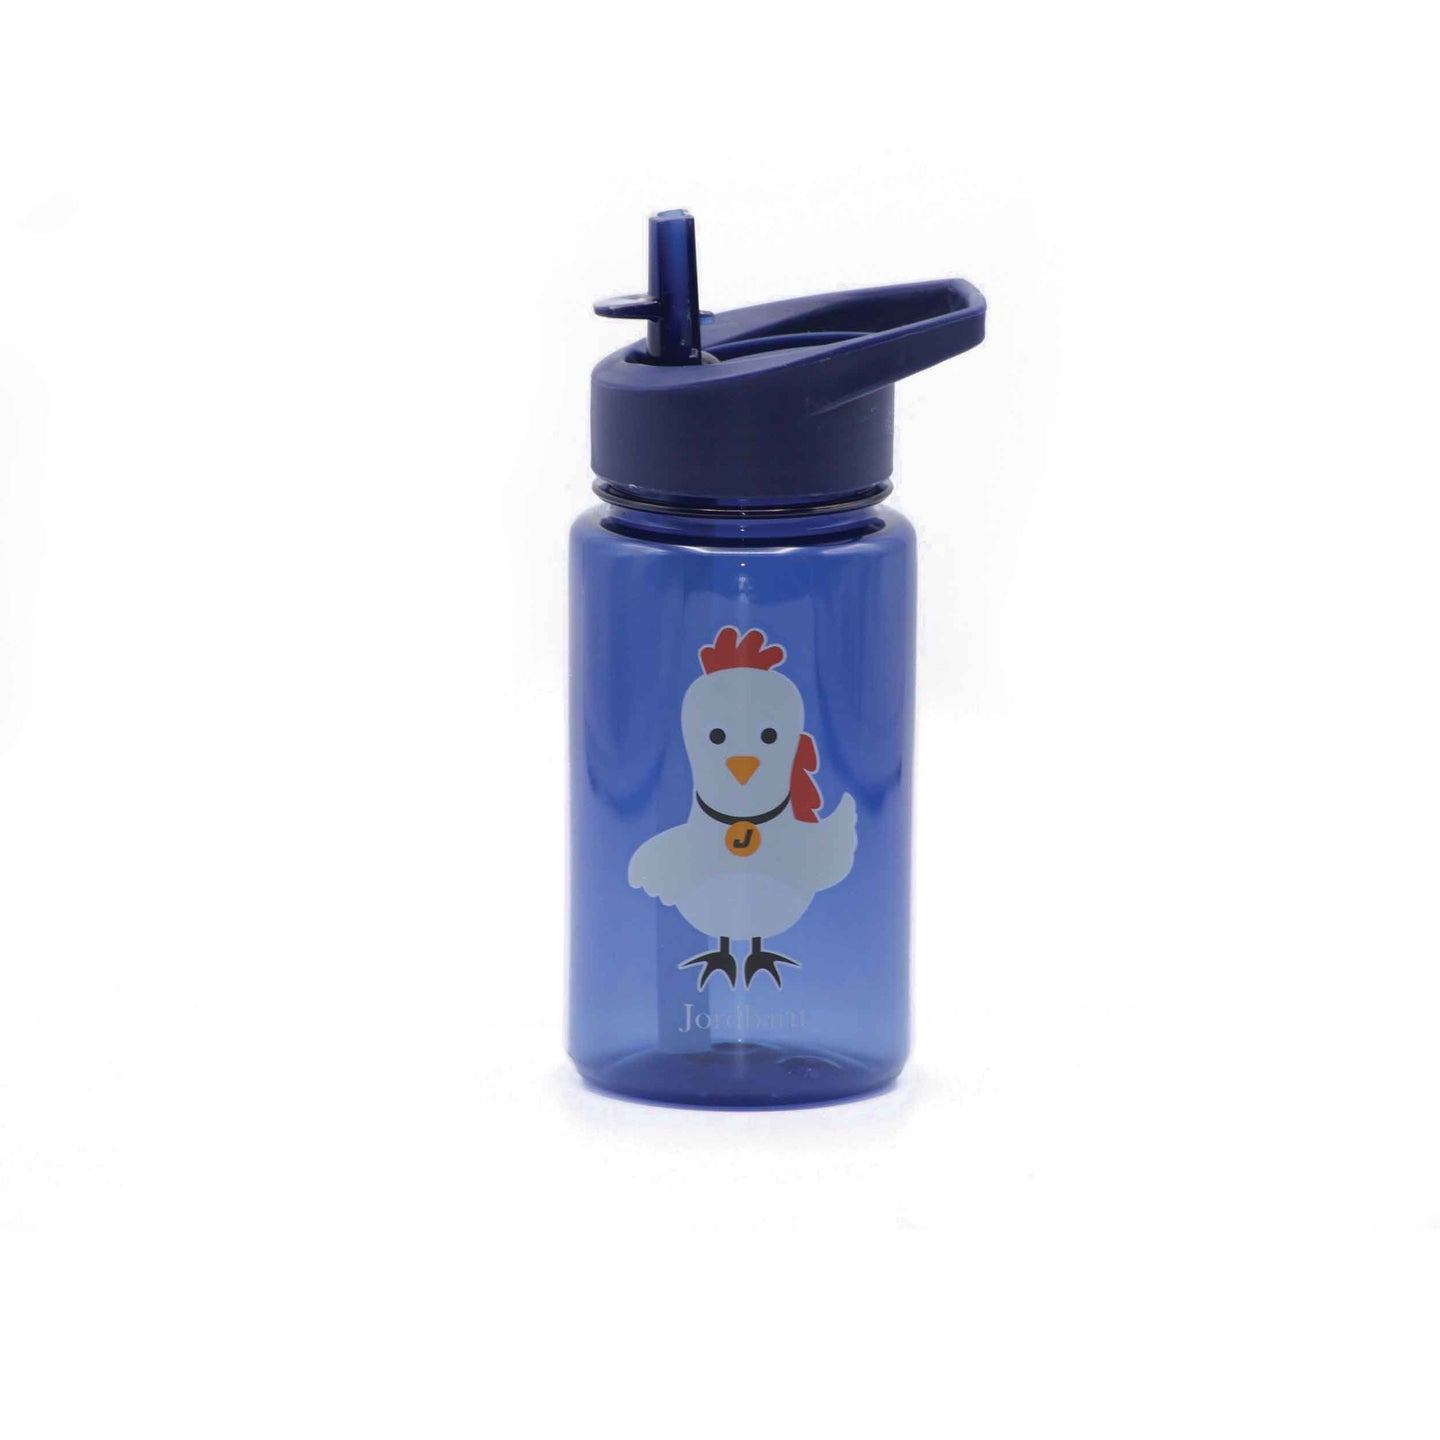 Jordbarn Indigo Water Bottle